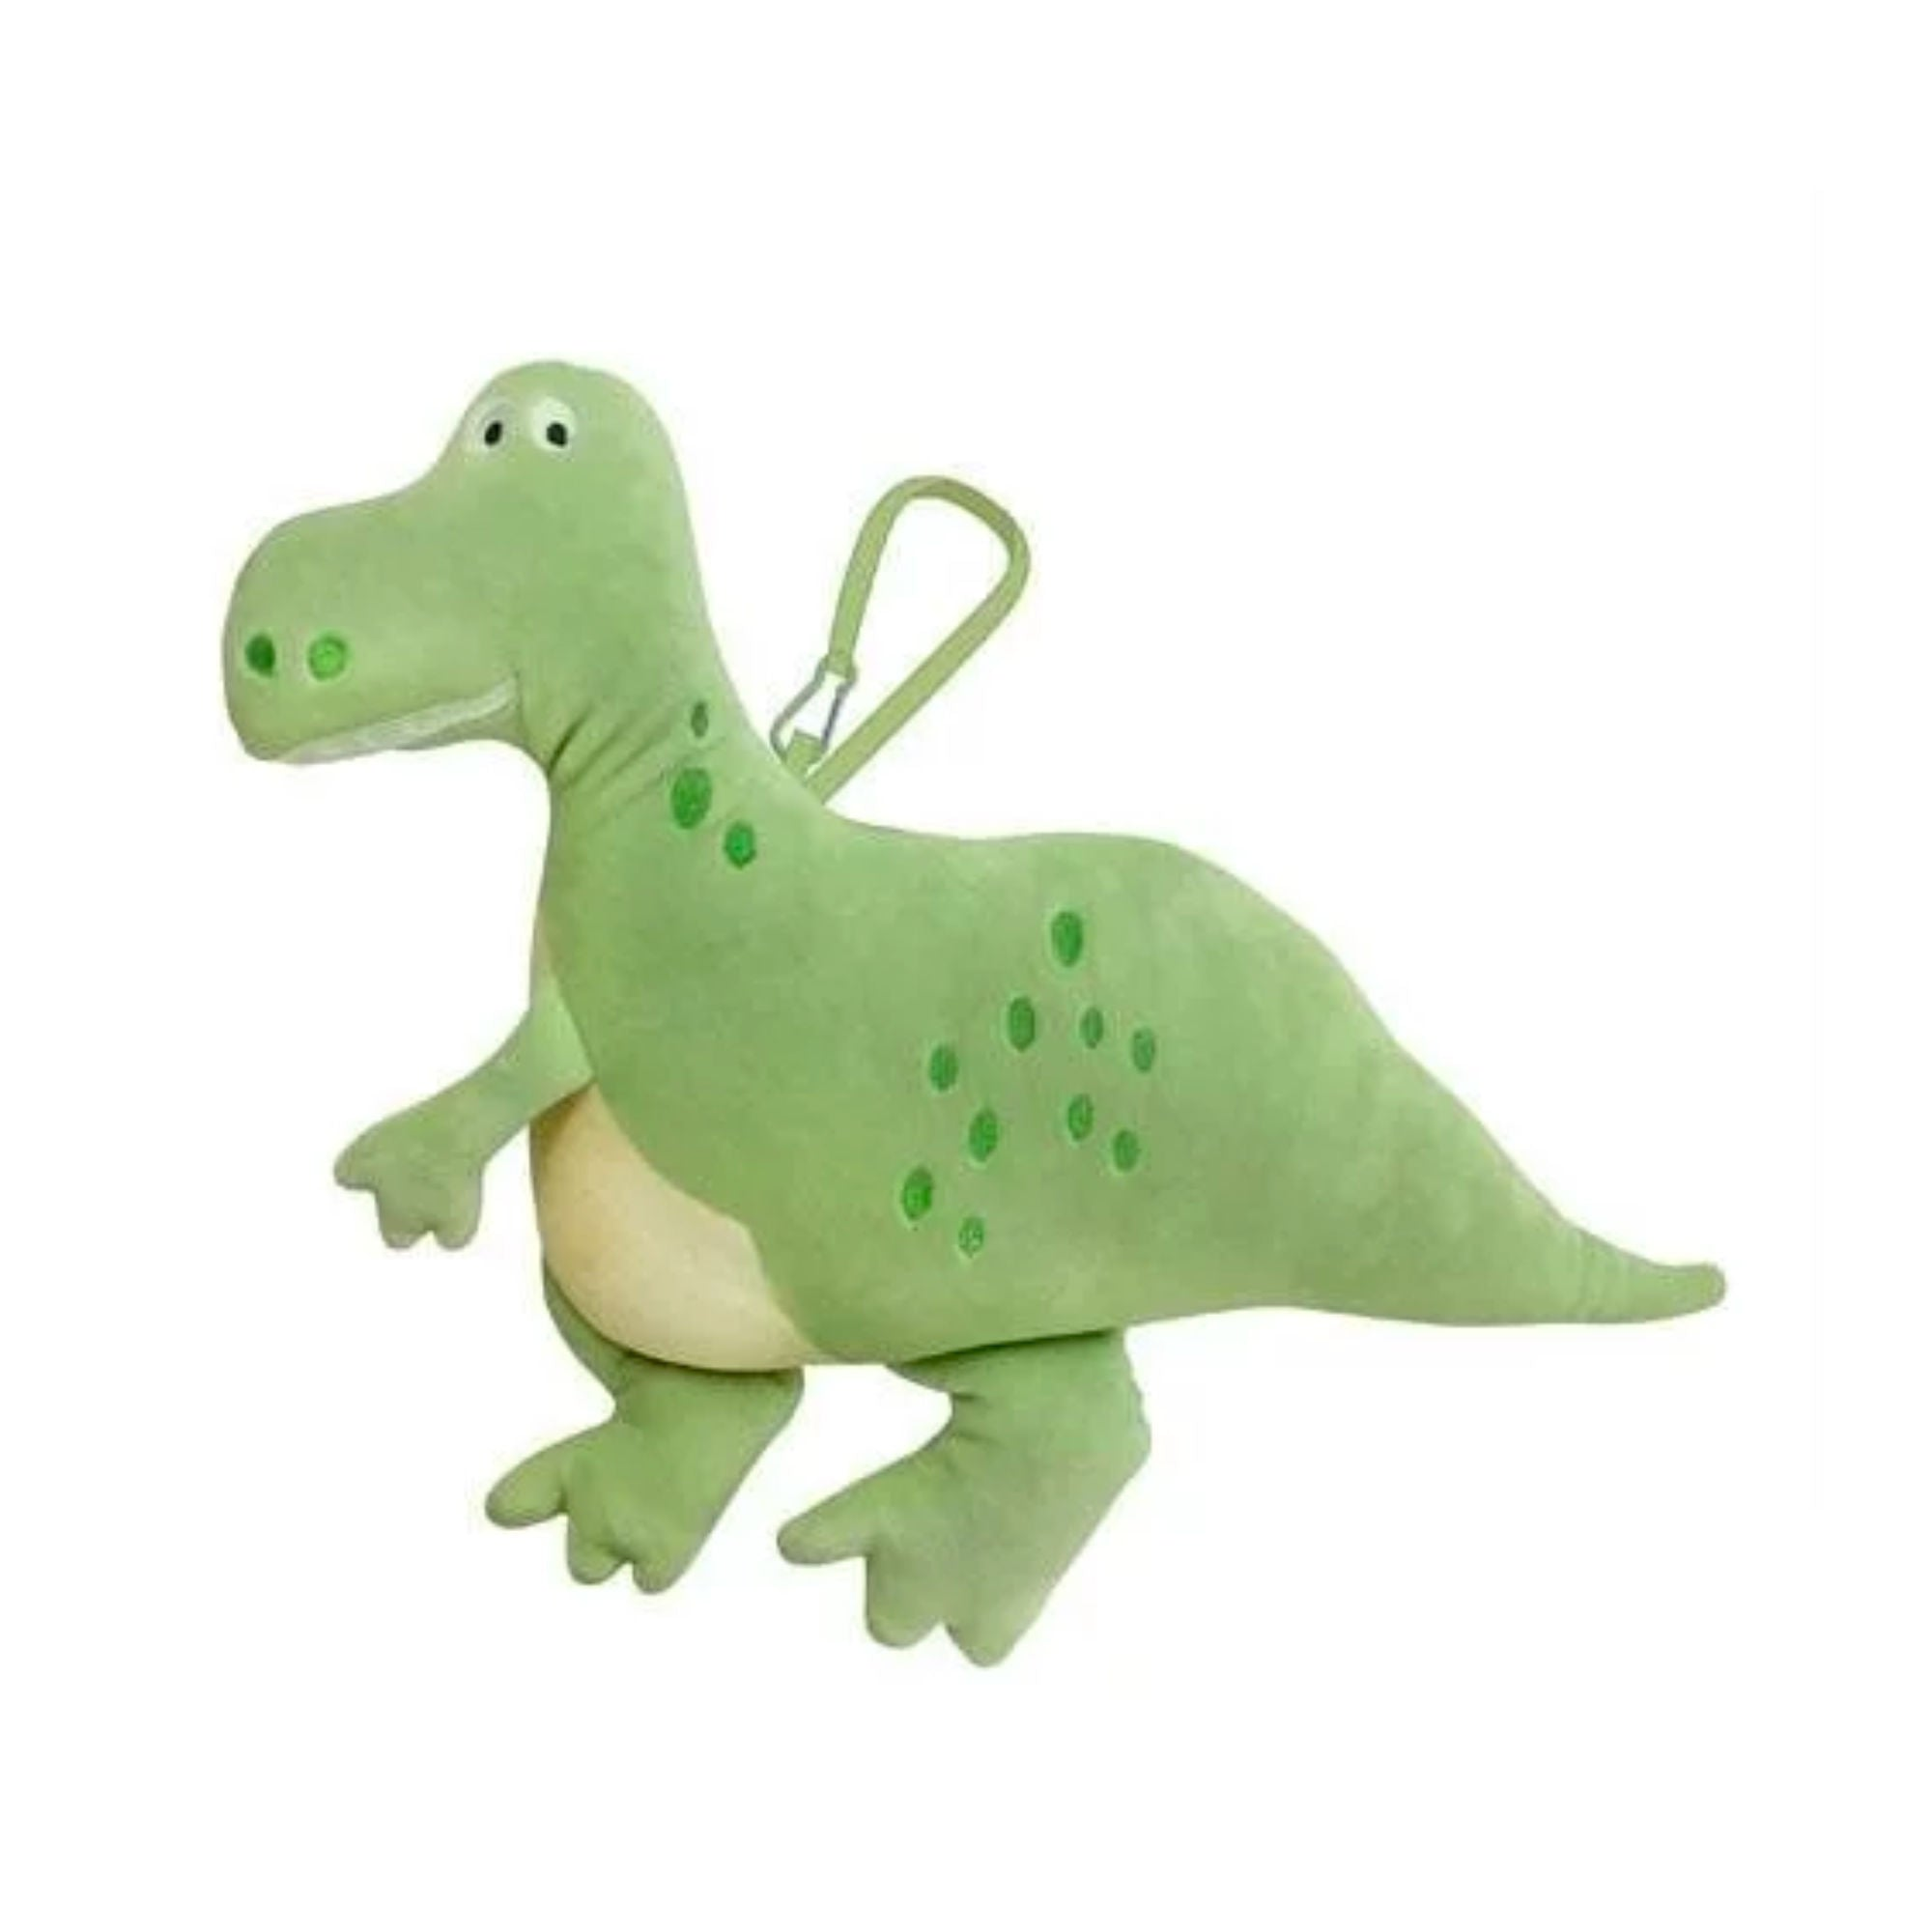 Nemu Nemu Toystory 2 Ways Cushion , Rex